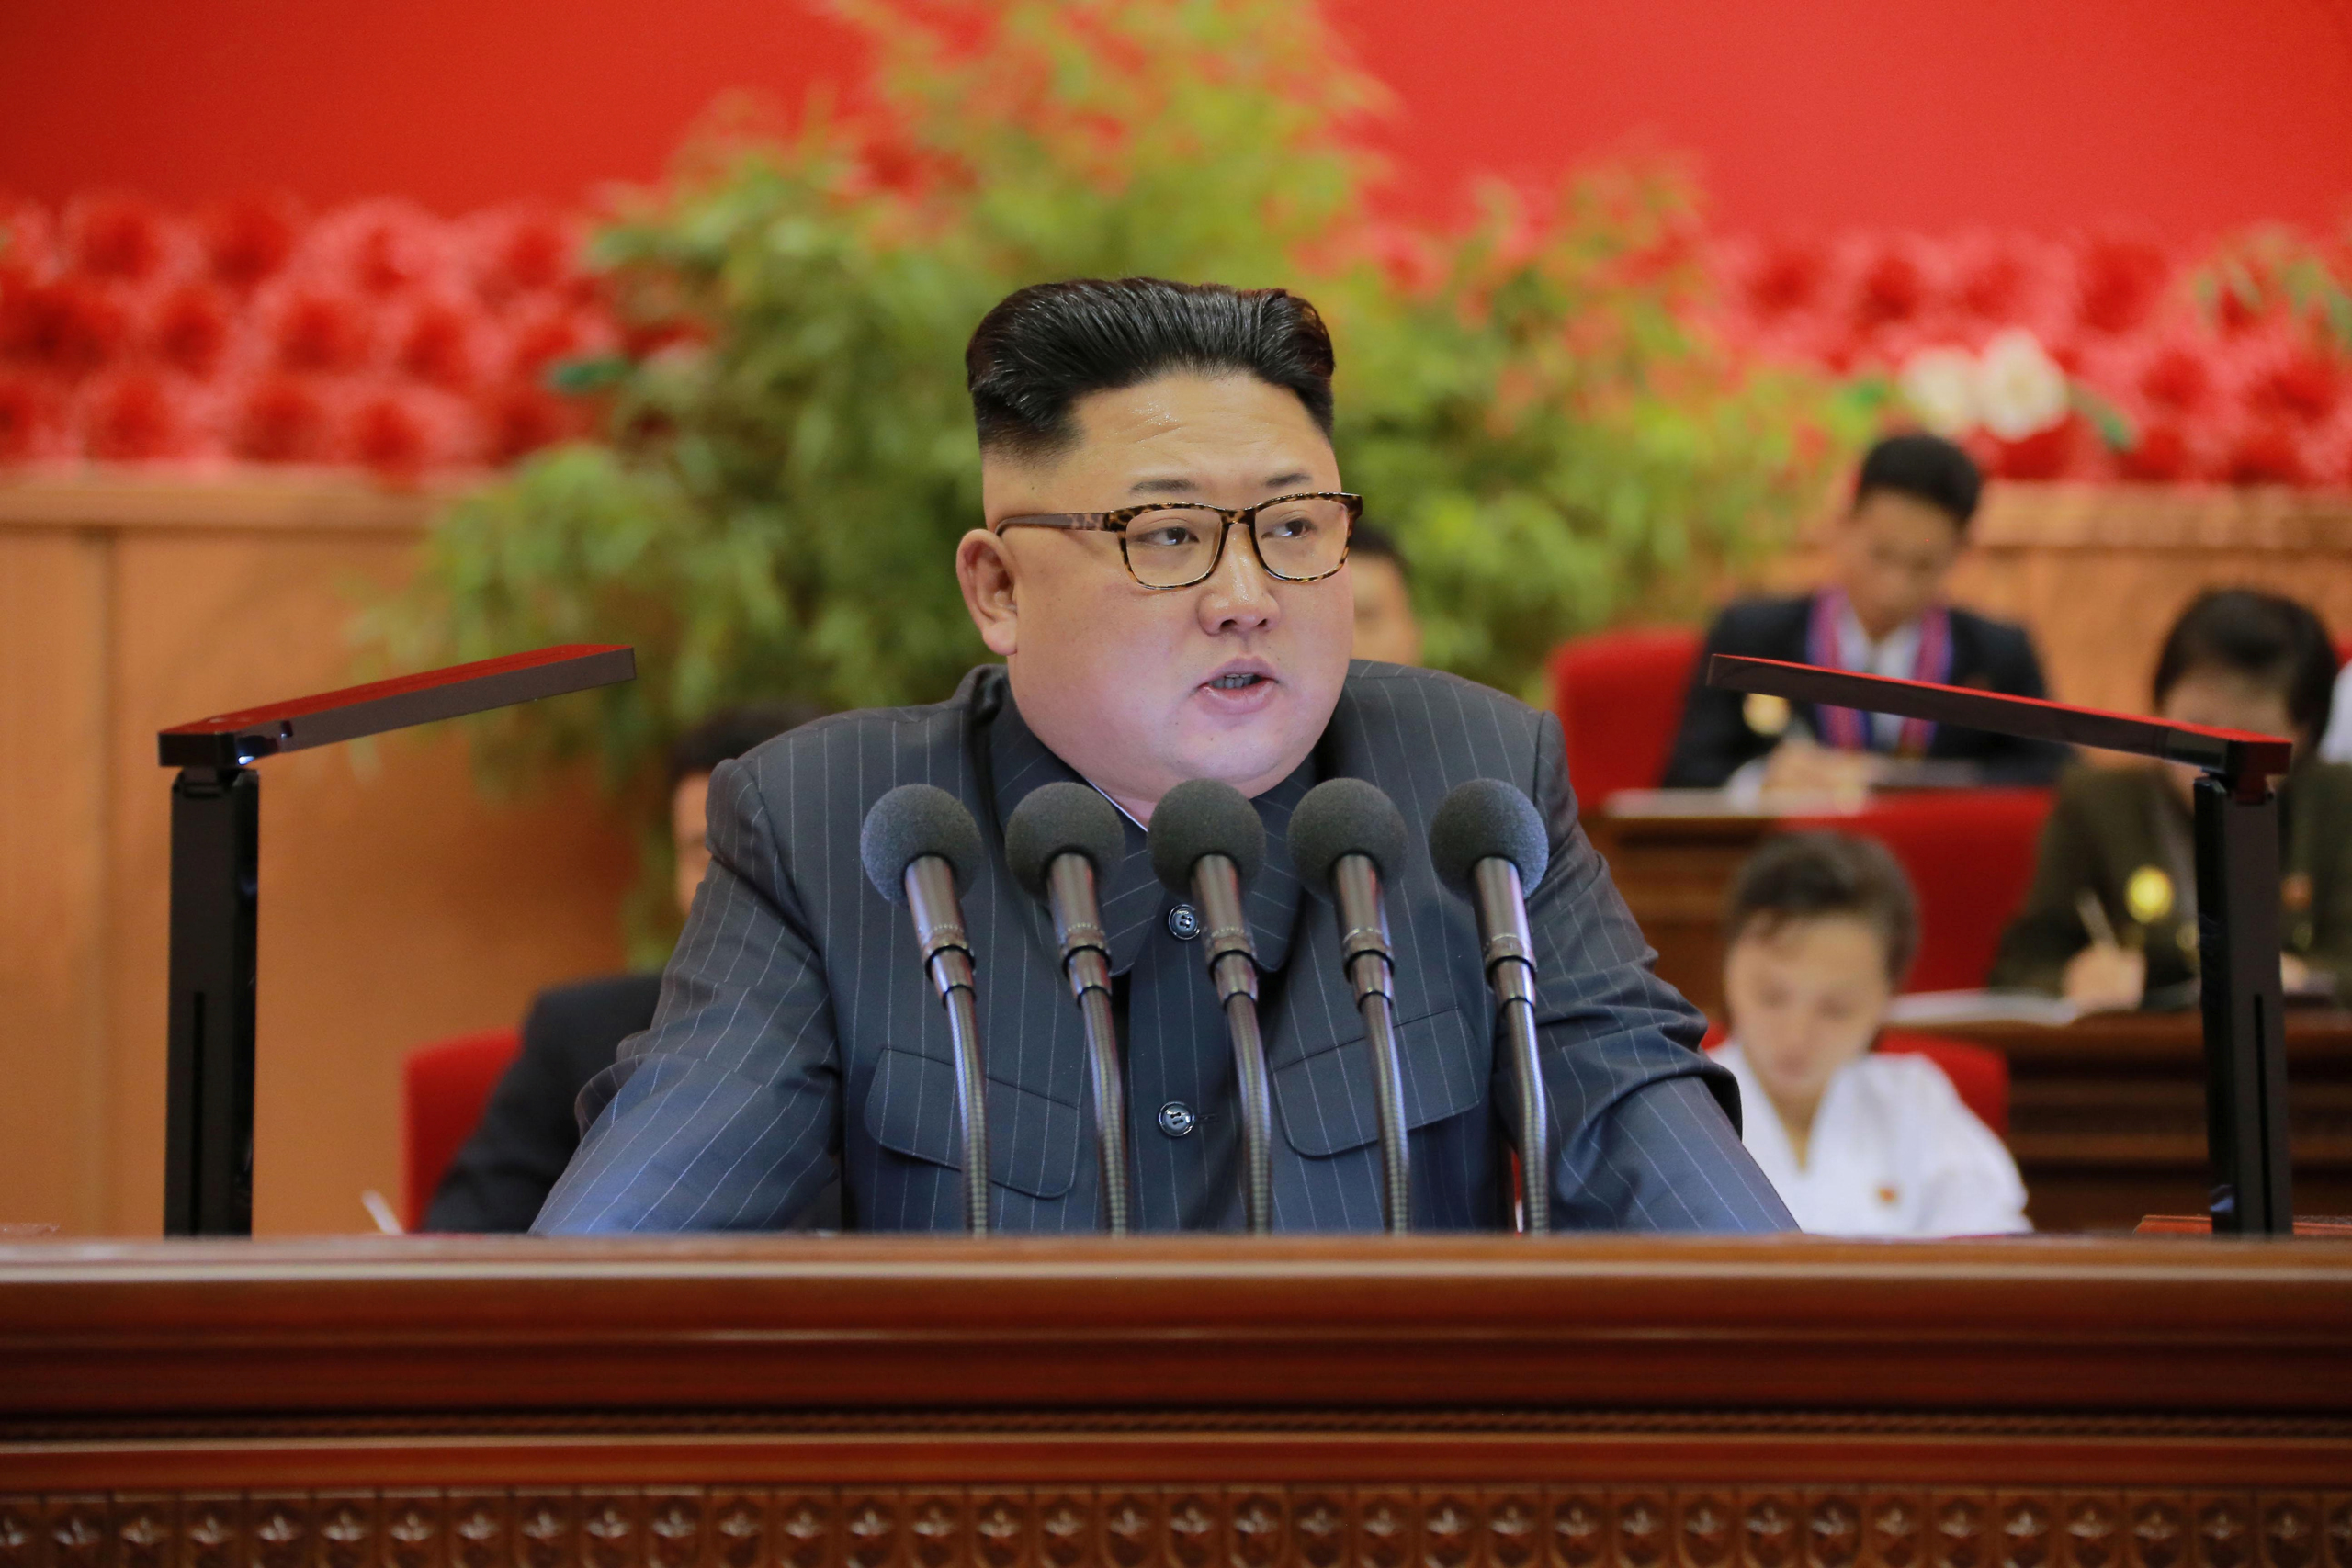 North Korean leader Kim Jong Un gives a speech at the 9th Congress of the Kim Il Sung Socialist Youth League in this undated photo released by North Korea's Korean Central News Agency (KCNA) in Pyongyang on August 29, 2016.